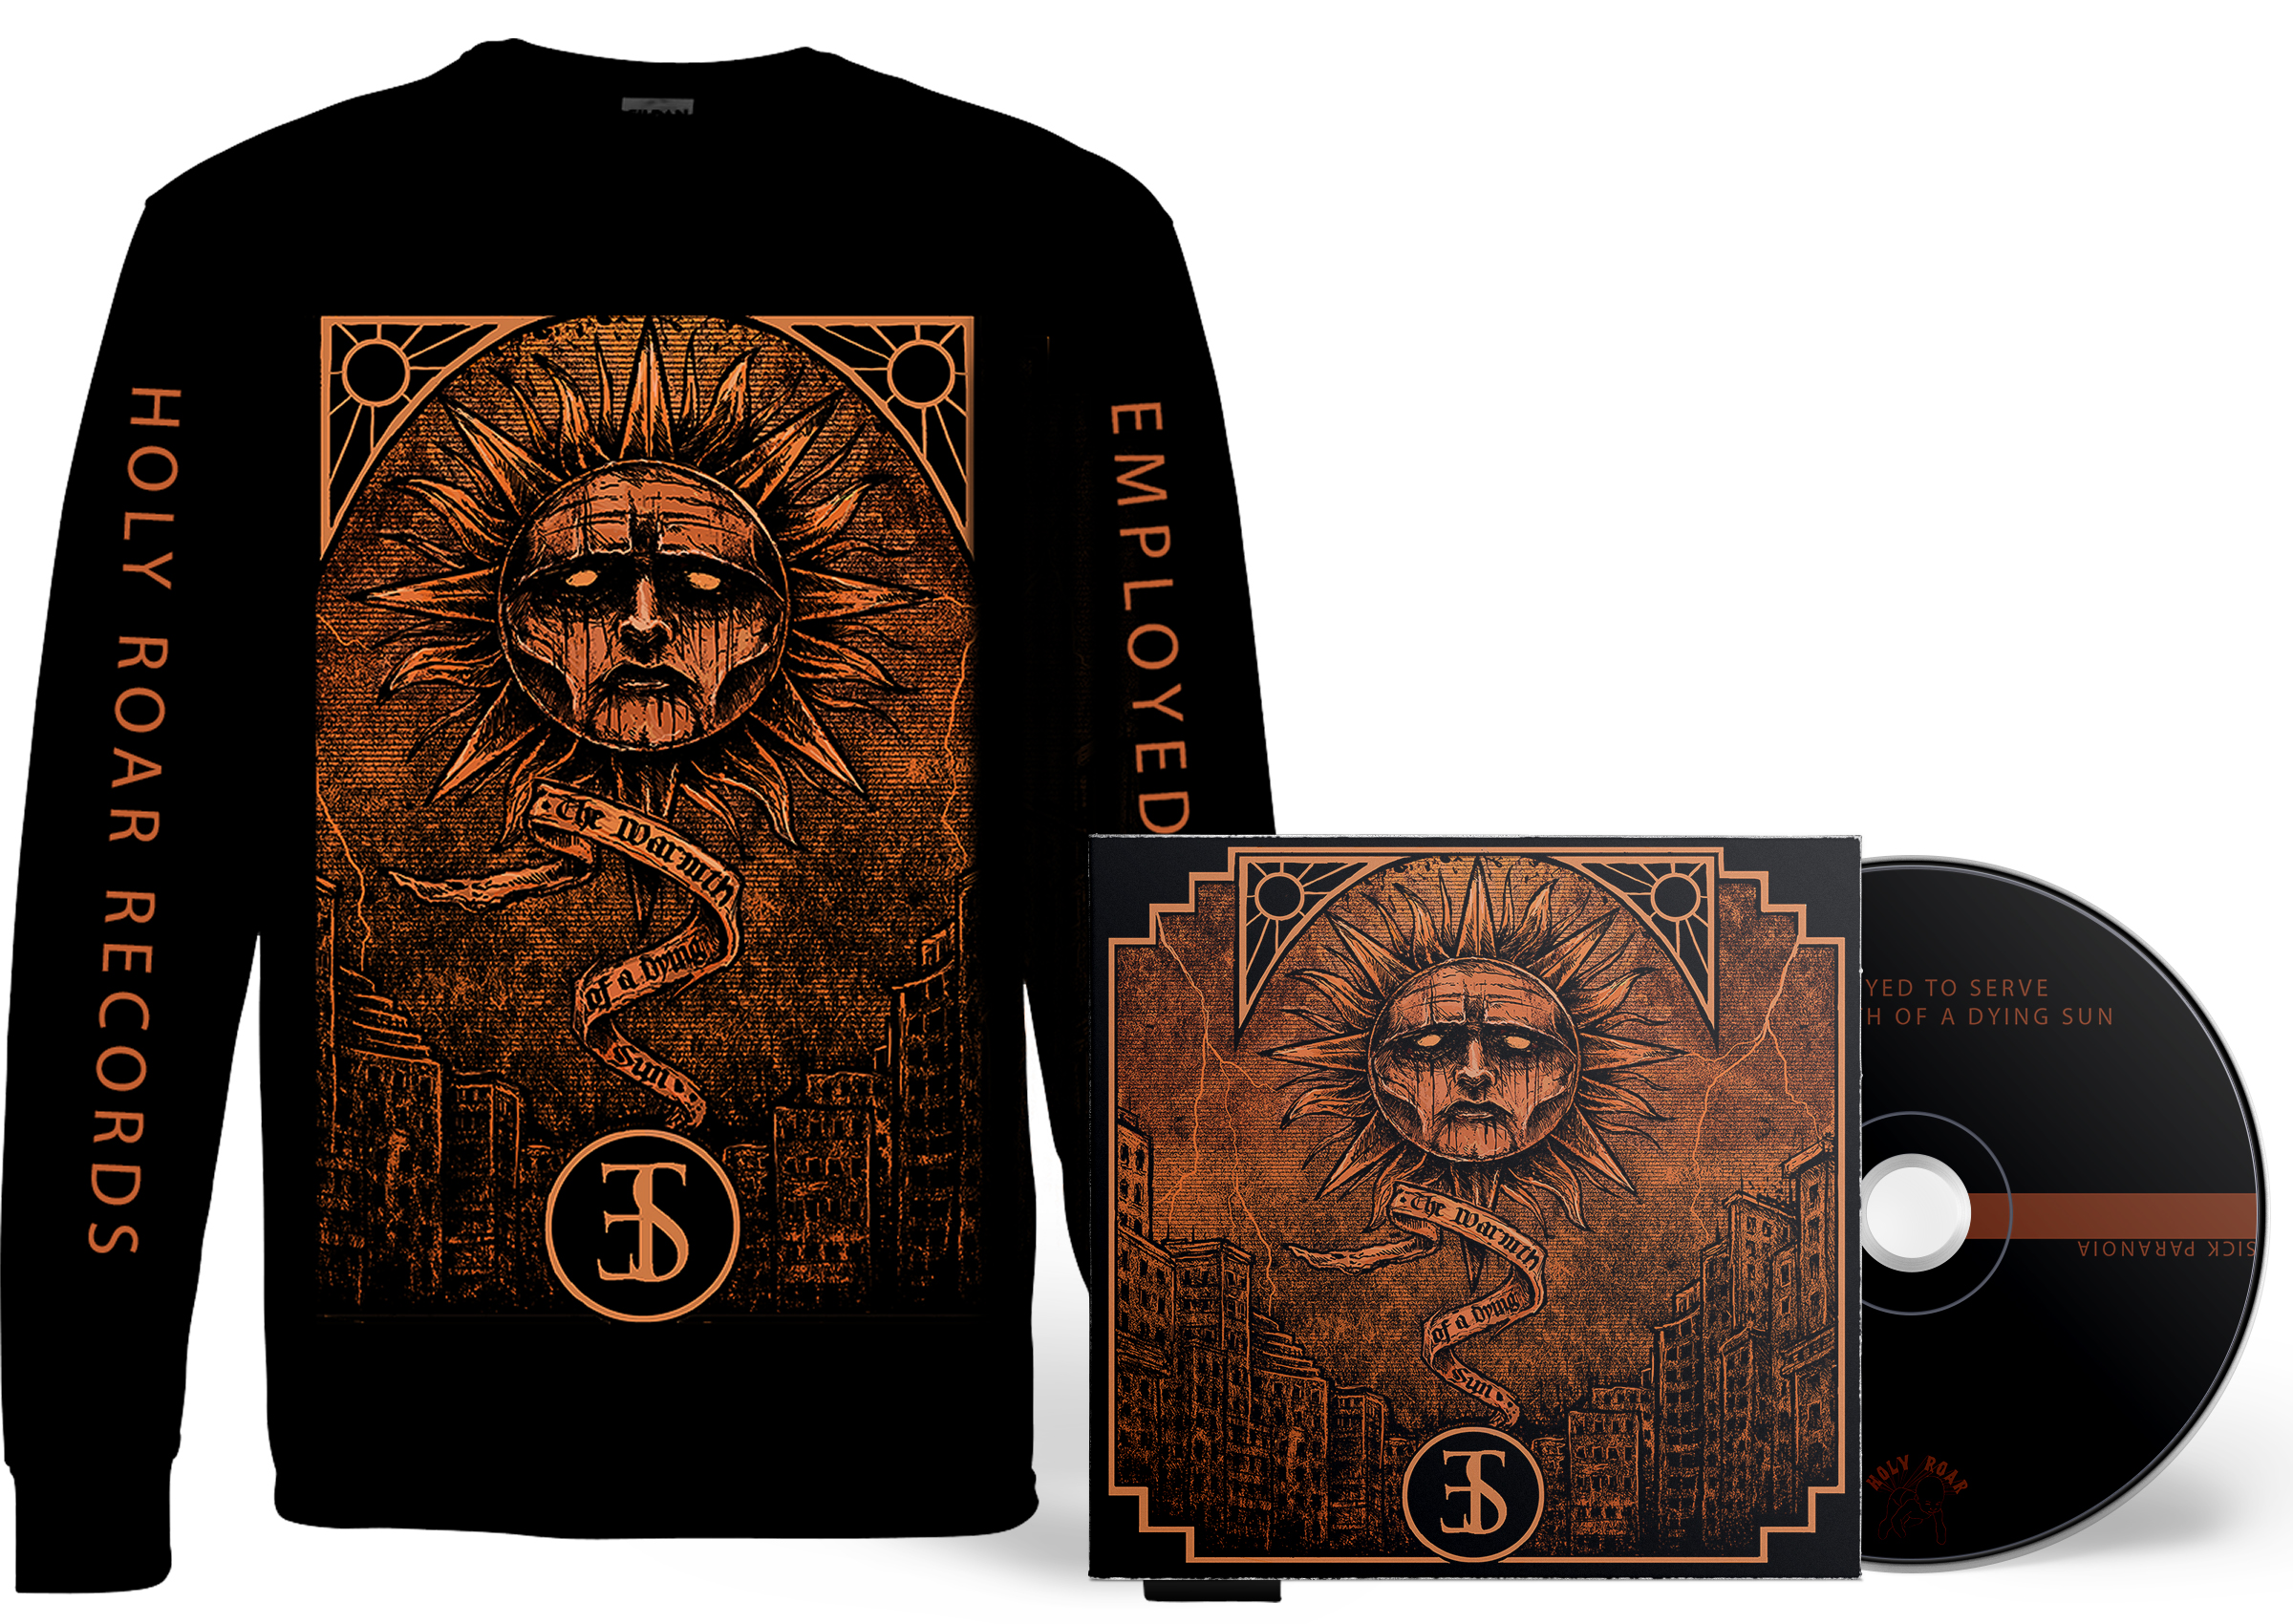 Employed To Serve - The Warmth Of A Dying Sun longsleeve + CD